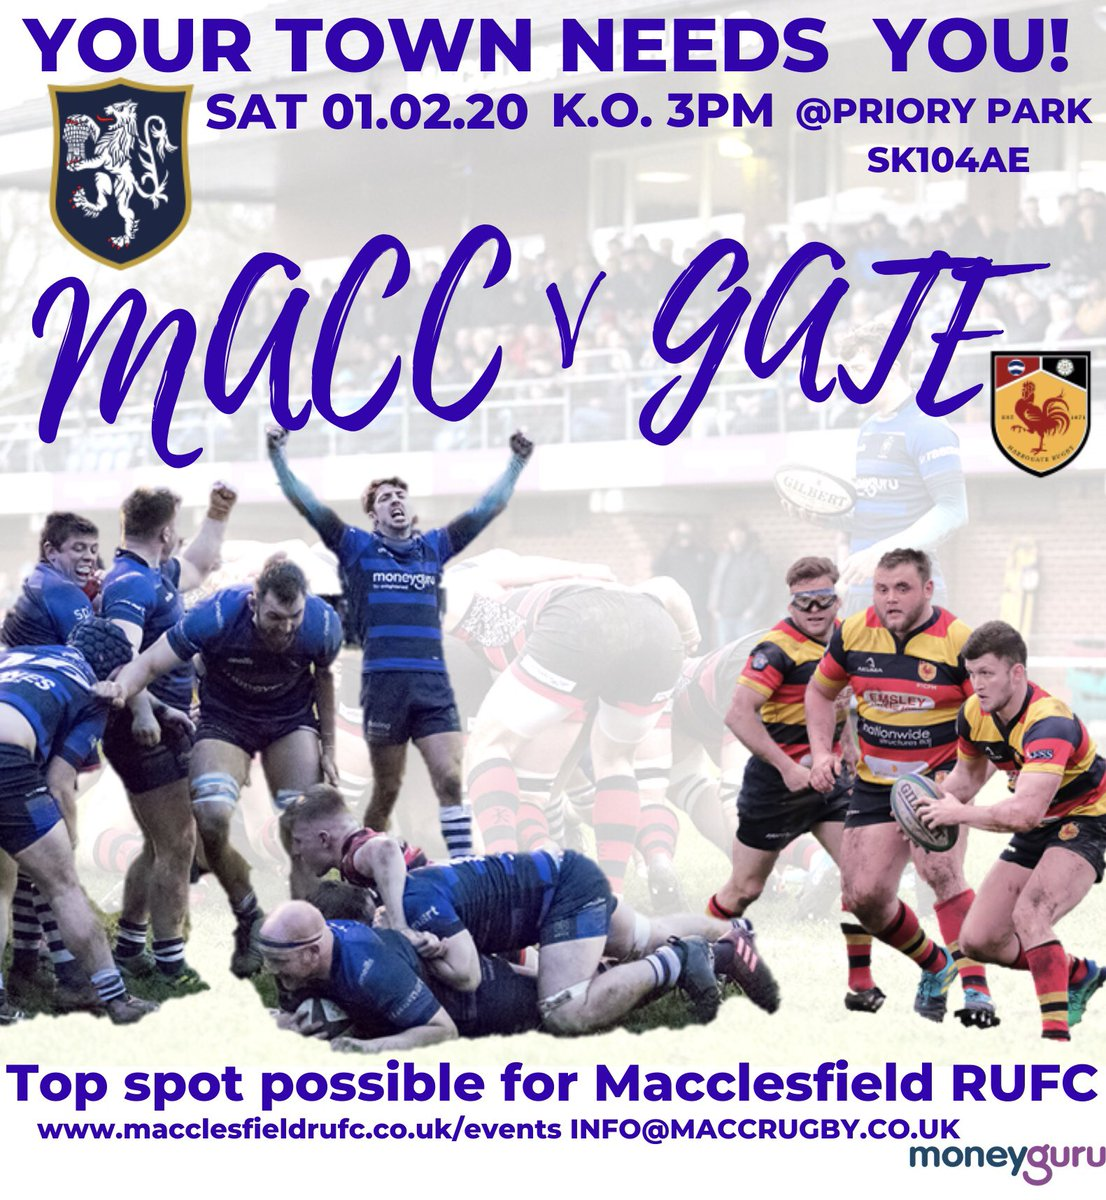 test Twitter Media - @Harrogate_Rugby comes to Priory Park 🗓01.02.20 ⏰3PM K.O The Club calls out for the support of members & community to get behind lads!  VISITORS WITH A MEMBER £5 MACC SPORTS CLUB MEMBERS & MACC TOWN TICKET HOLDERS £5 Membership Card or S Tickets MEM £5, NON MEM £10 U16S GO Free https://t.co/nF2Kd8n8yo